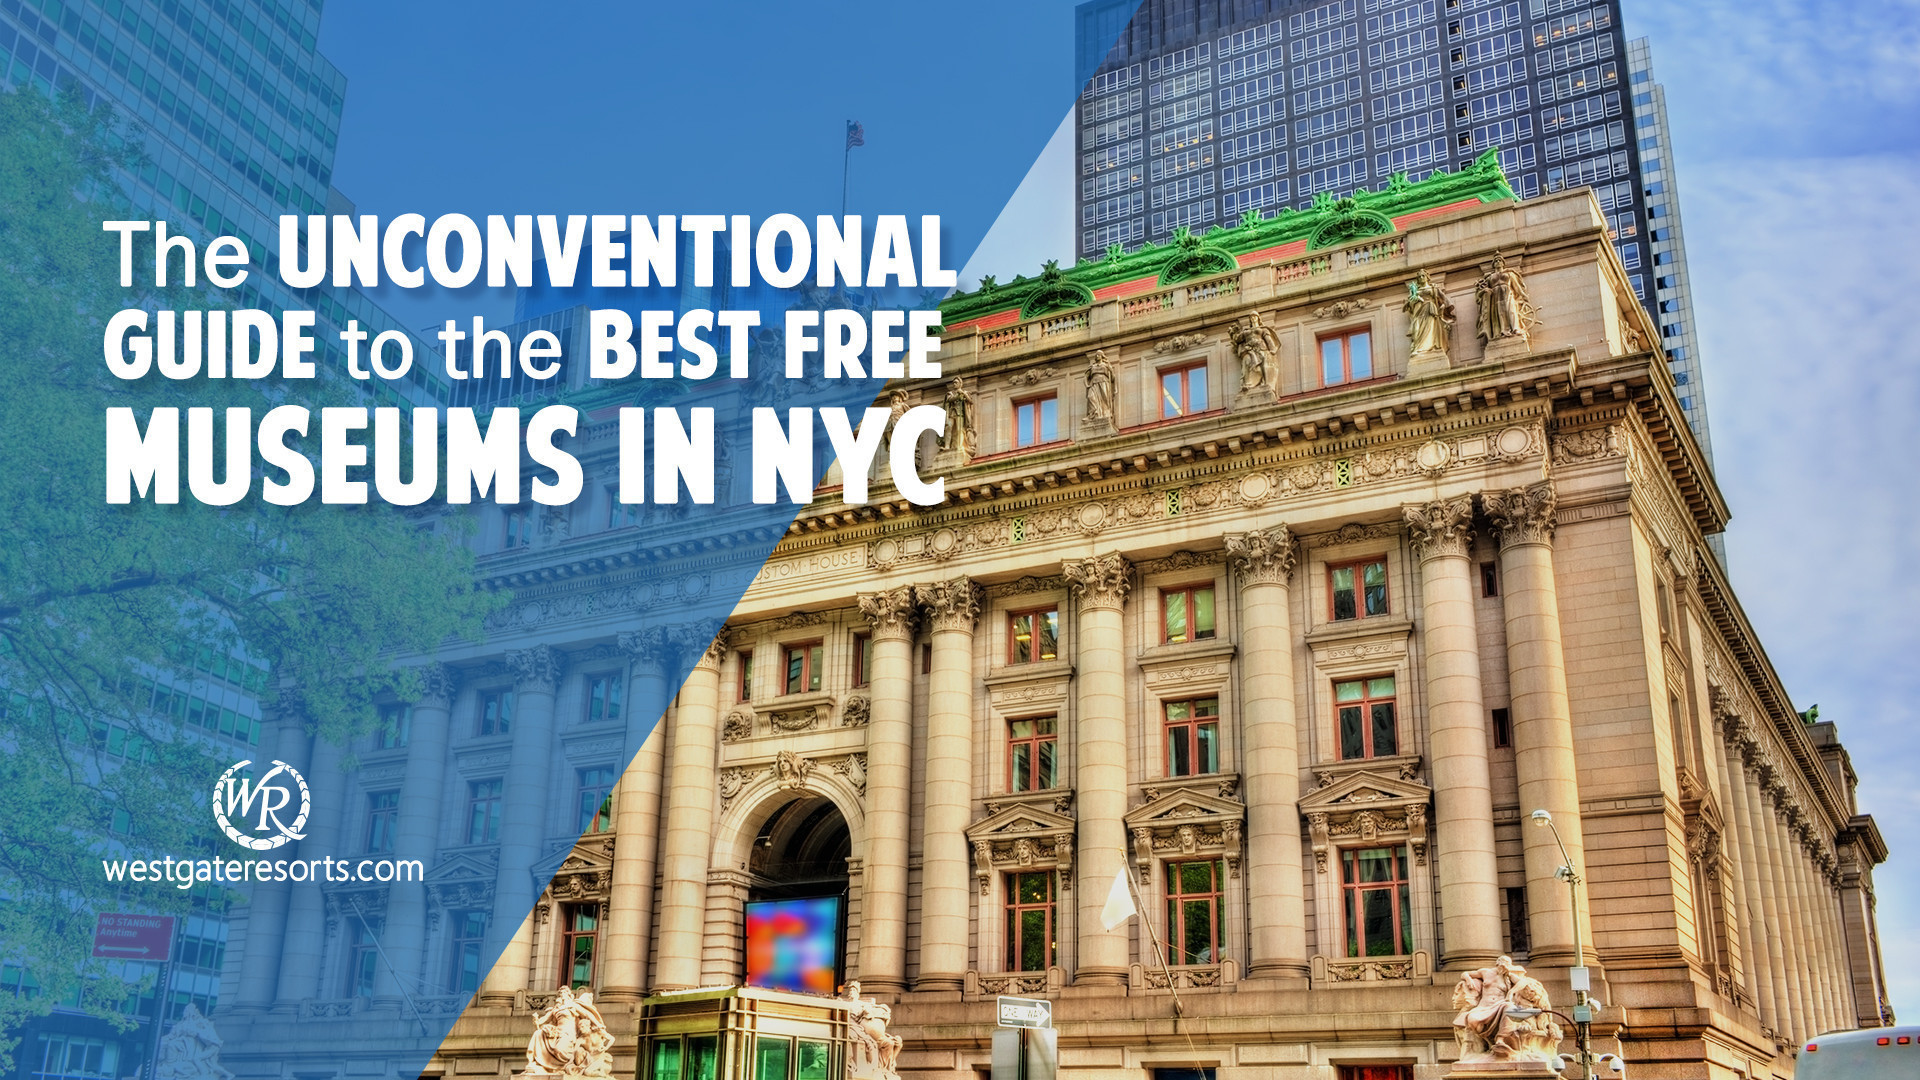 The Unconventional Guide to the Best Free Museums in NYC | Westgate New York City | Free Museum Days NYC